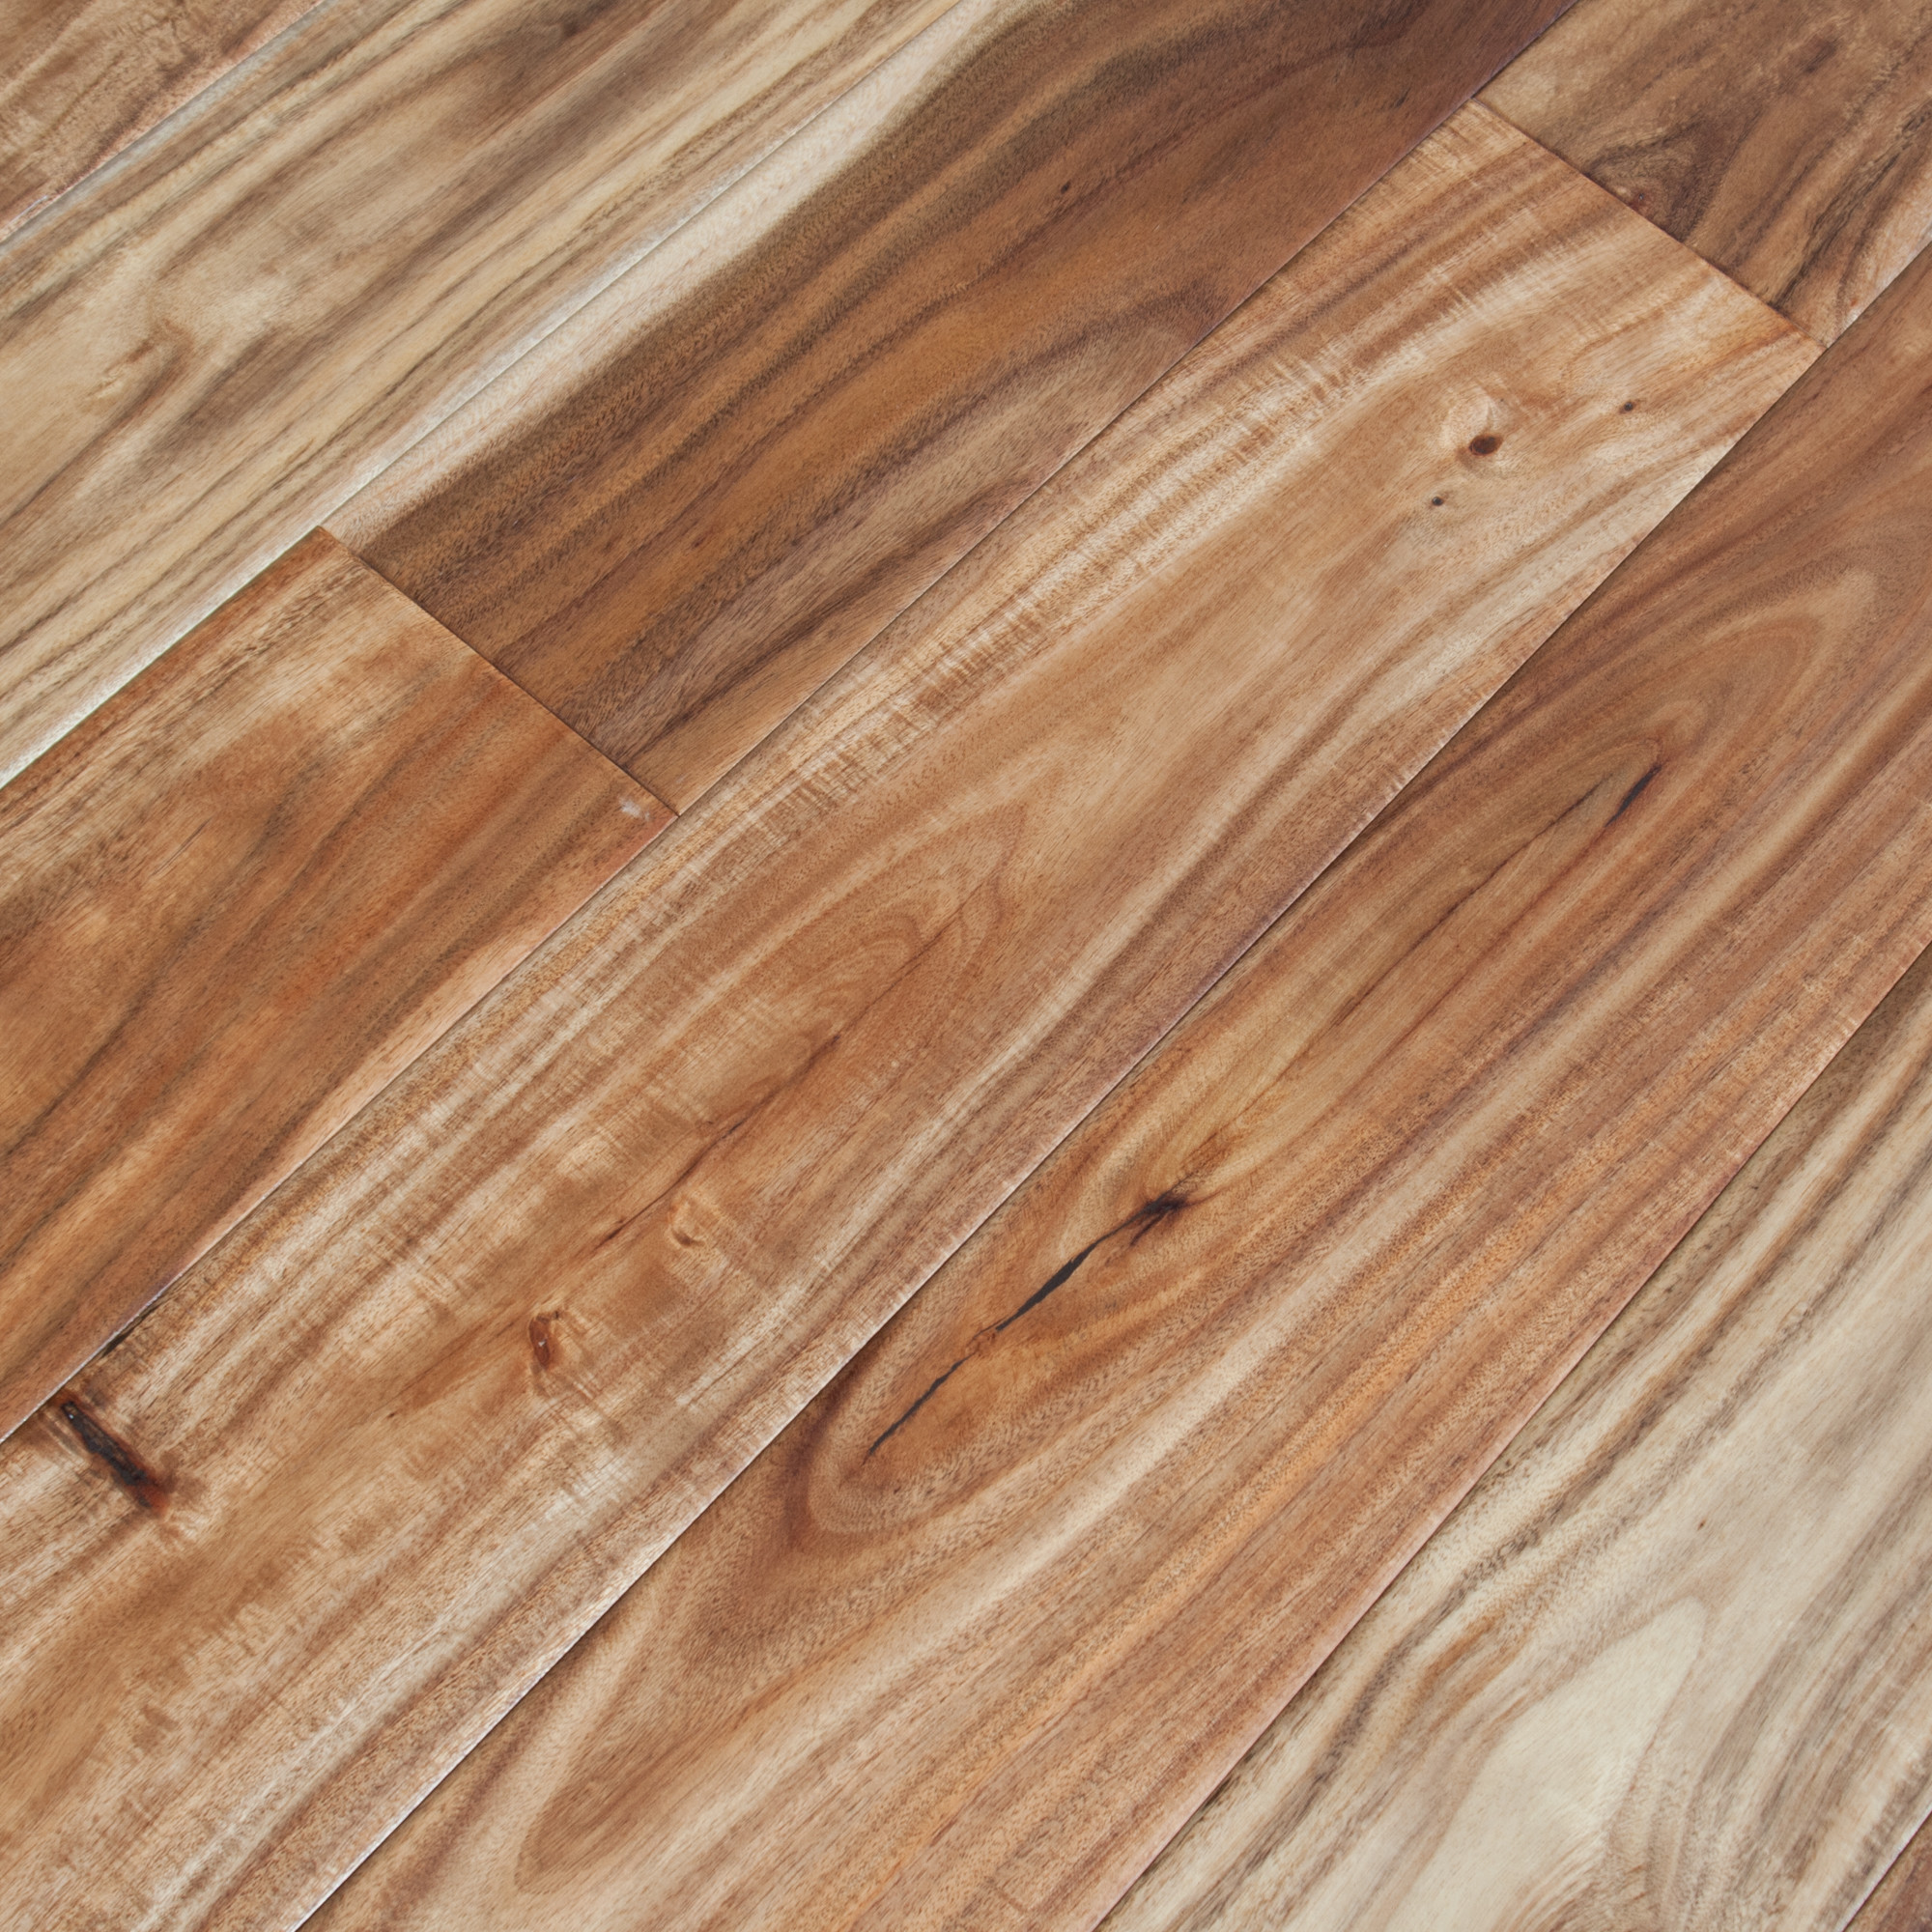 acacia engineered hardwood flooring of 9 mile creek acacia hand scraped acacia confusa wood floors inside acacia handscraped natural hardwood flooring